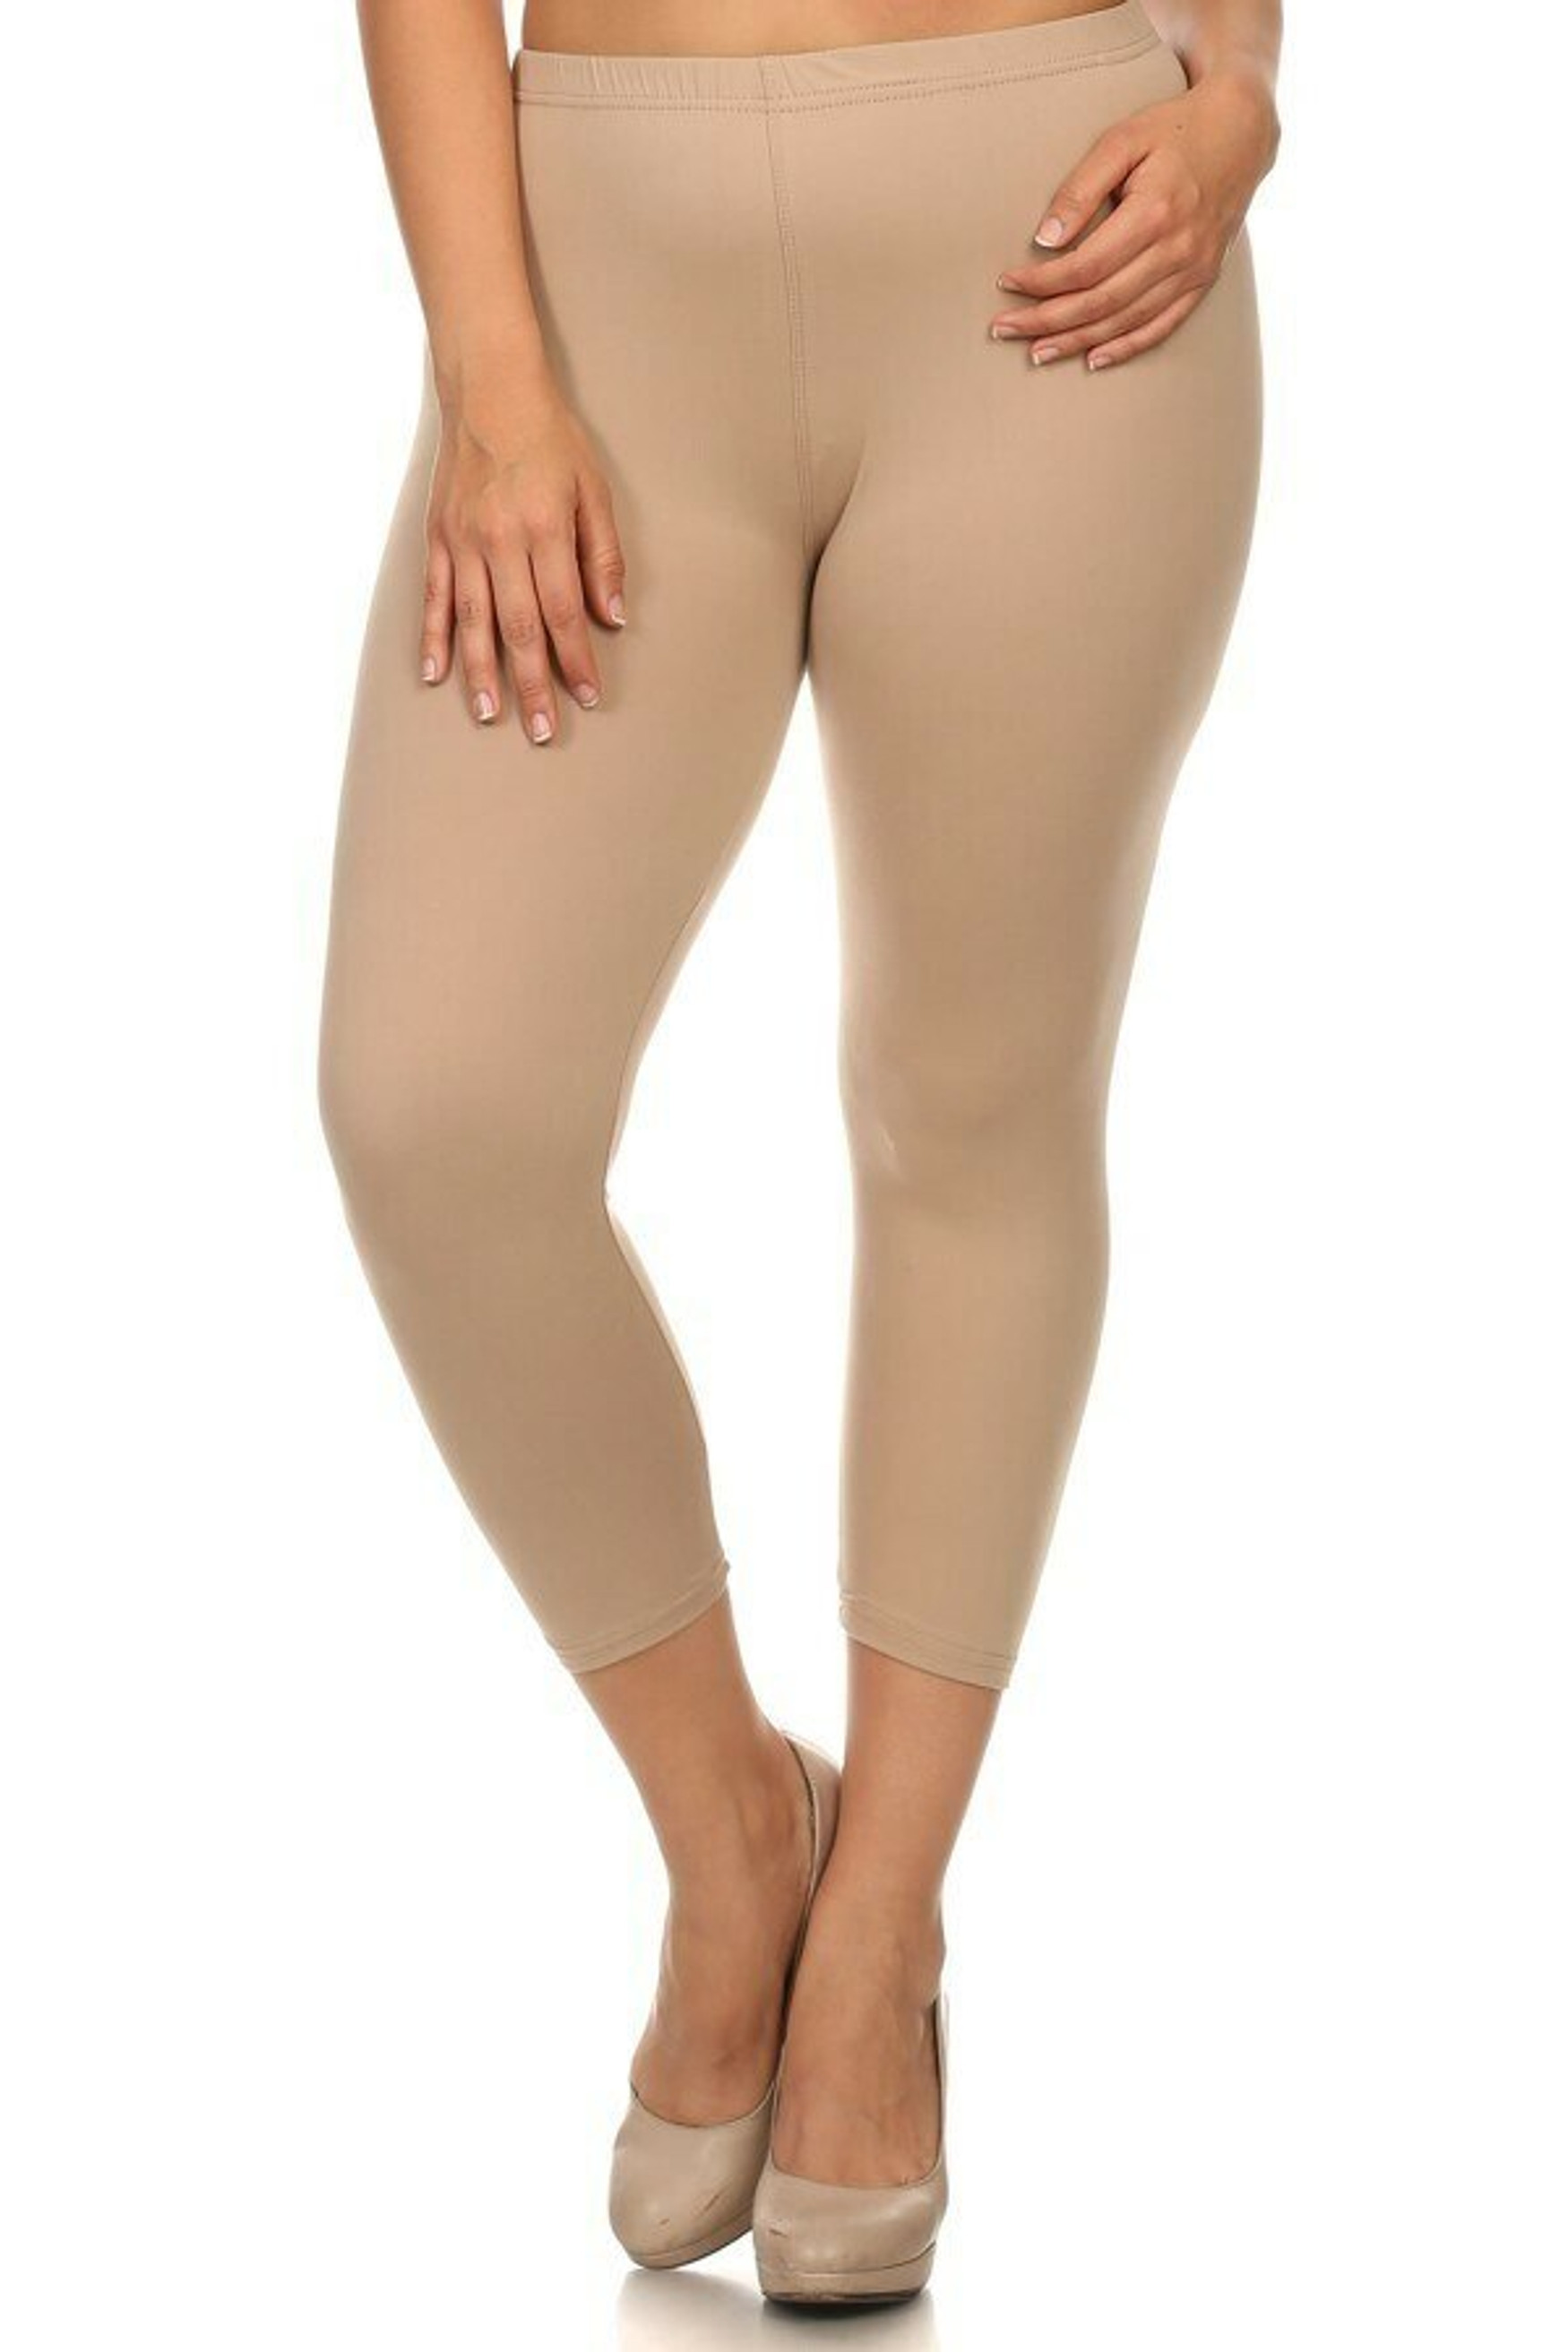 Front side image of beige Buttery Soft Solid Basic Extra Plus Size Capris - 3X-5X - New Mix